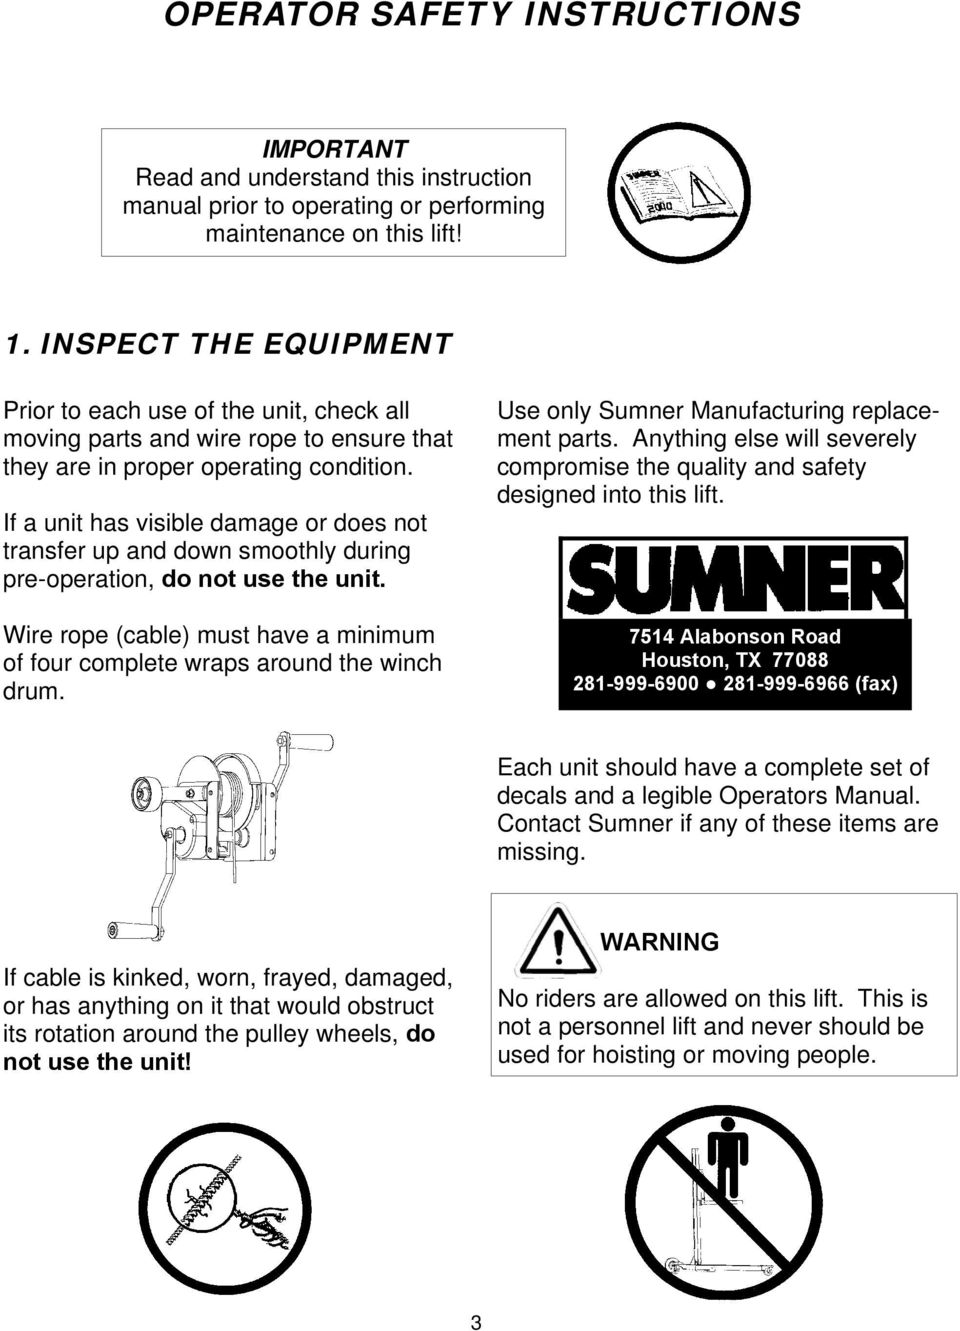 Operator S Manual Eventer 20 25 Series Lifts Pdf Wiring Schematic Diagram Guide Winch If A Unit Has Visible Damage Or Does Not Transfer Up And Down Smoothly During Pre 4 Safety Instructions